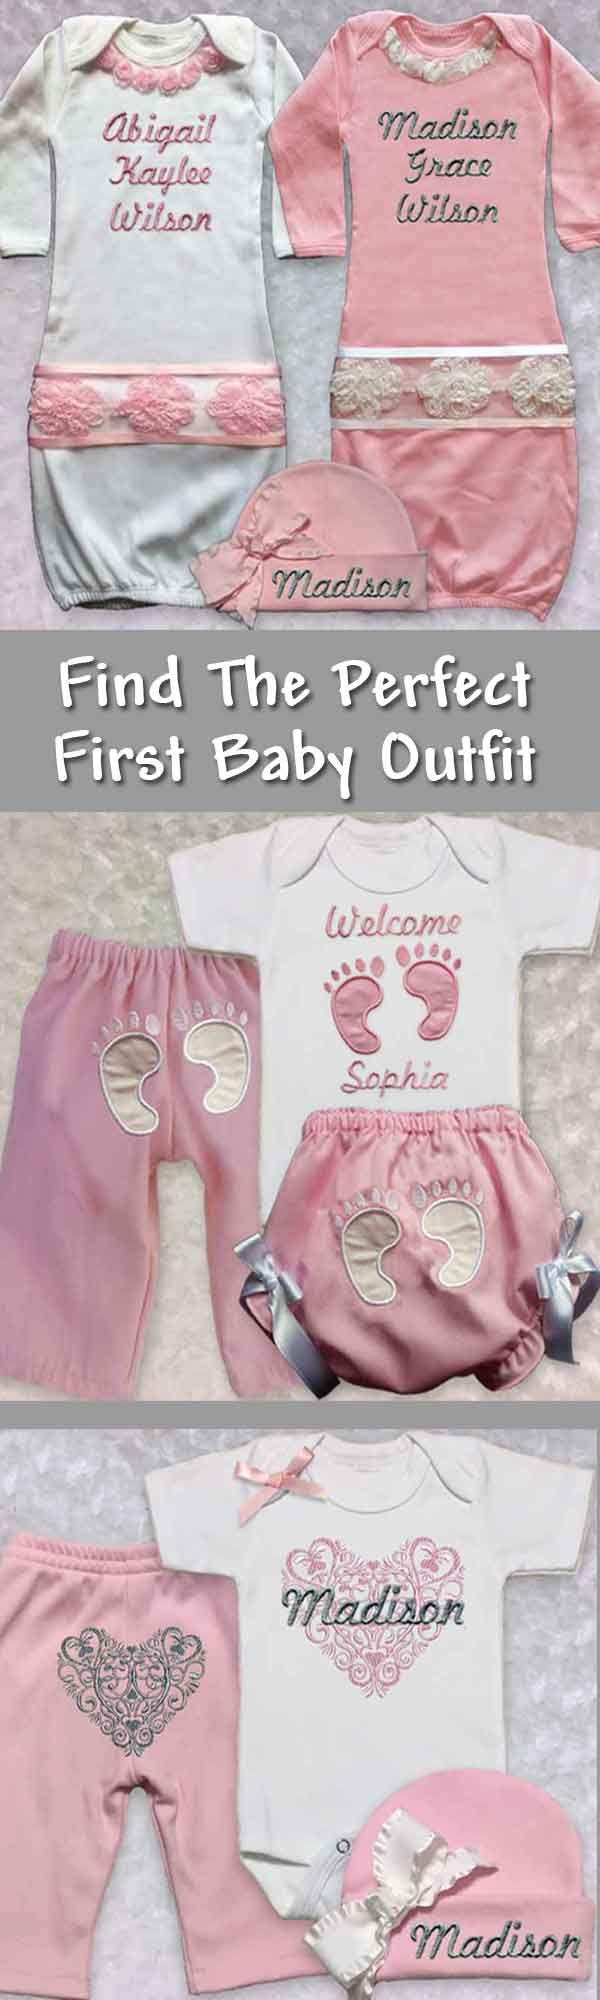 Newborn Infant Outfits Find The Perfect Baby Girl First Outfit Featuring